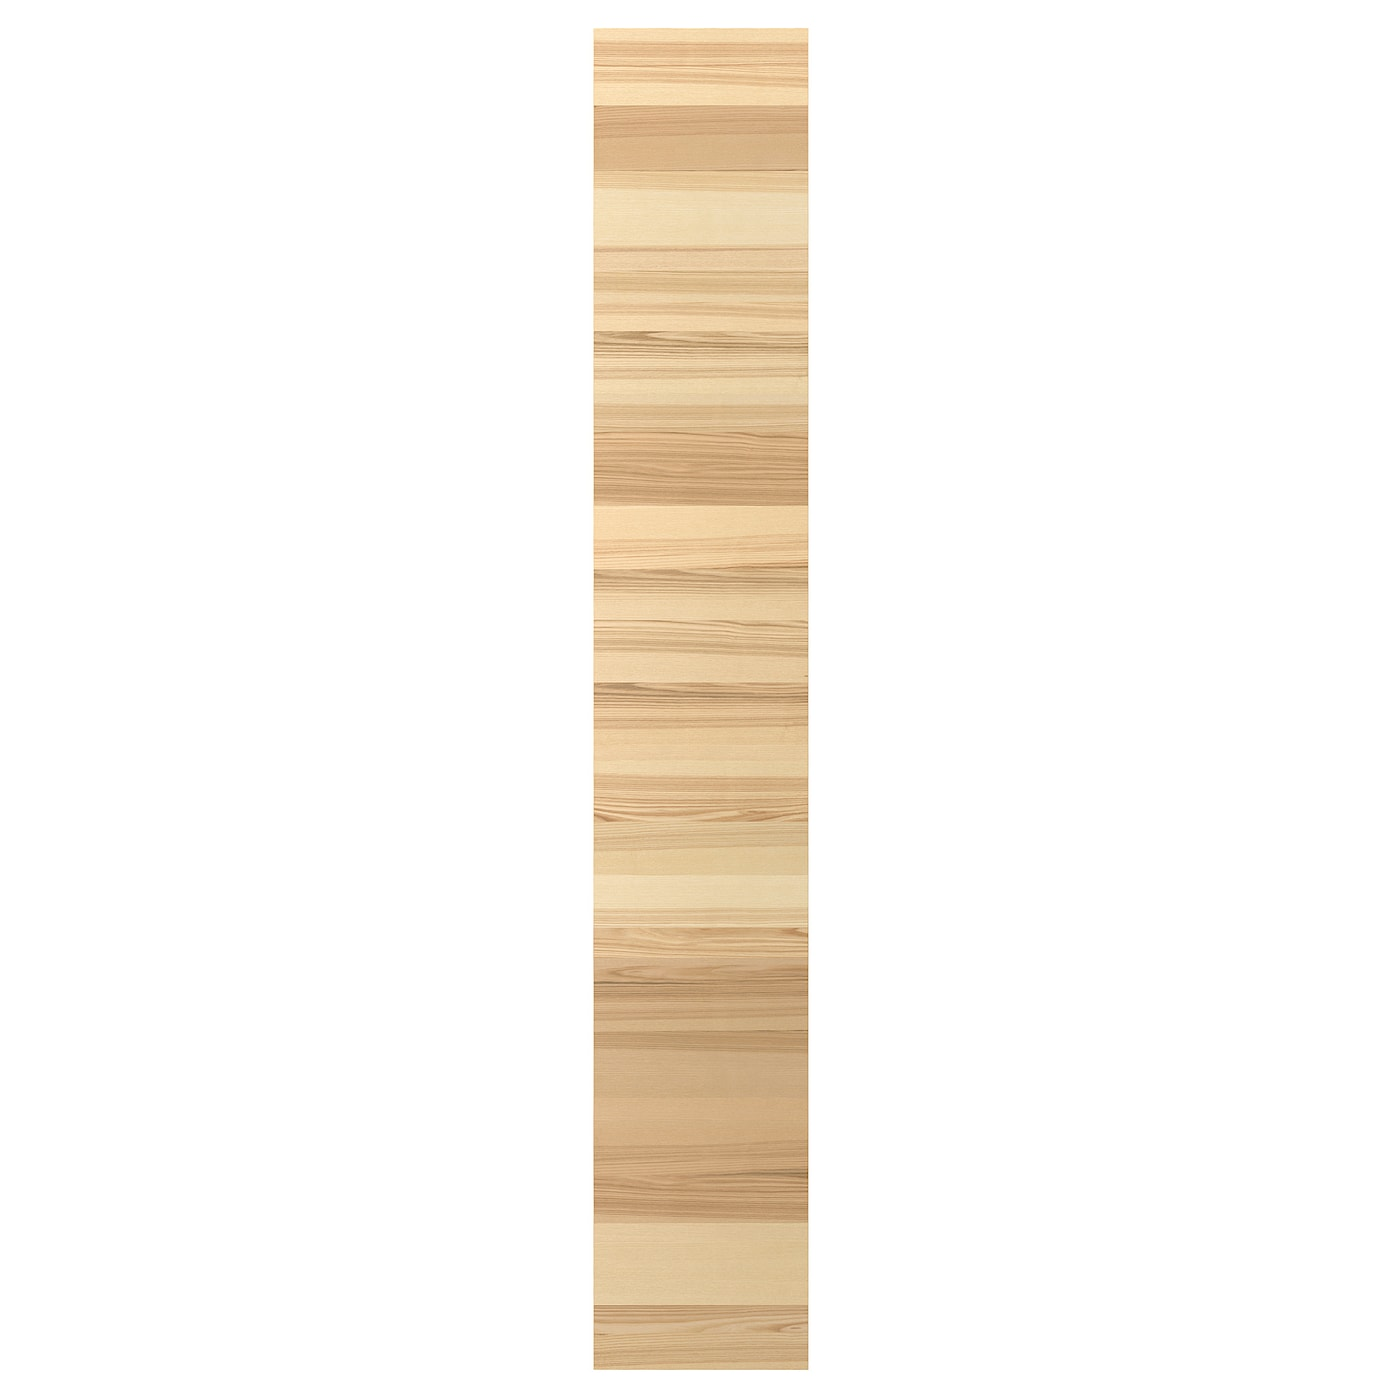 IKEA TORHAMN cover panel Visible variations in the wood grain; gives a warm, natural feeling.